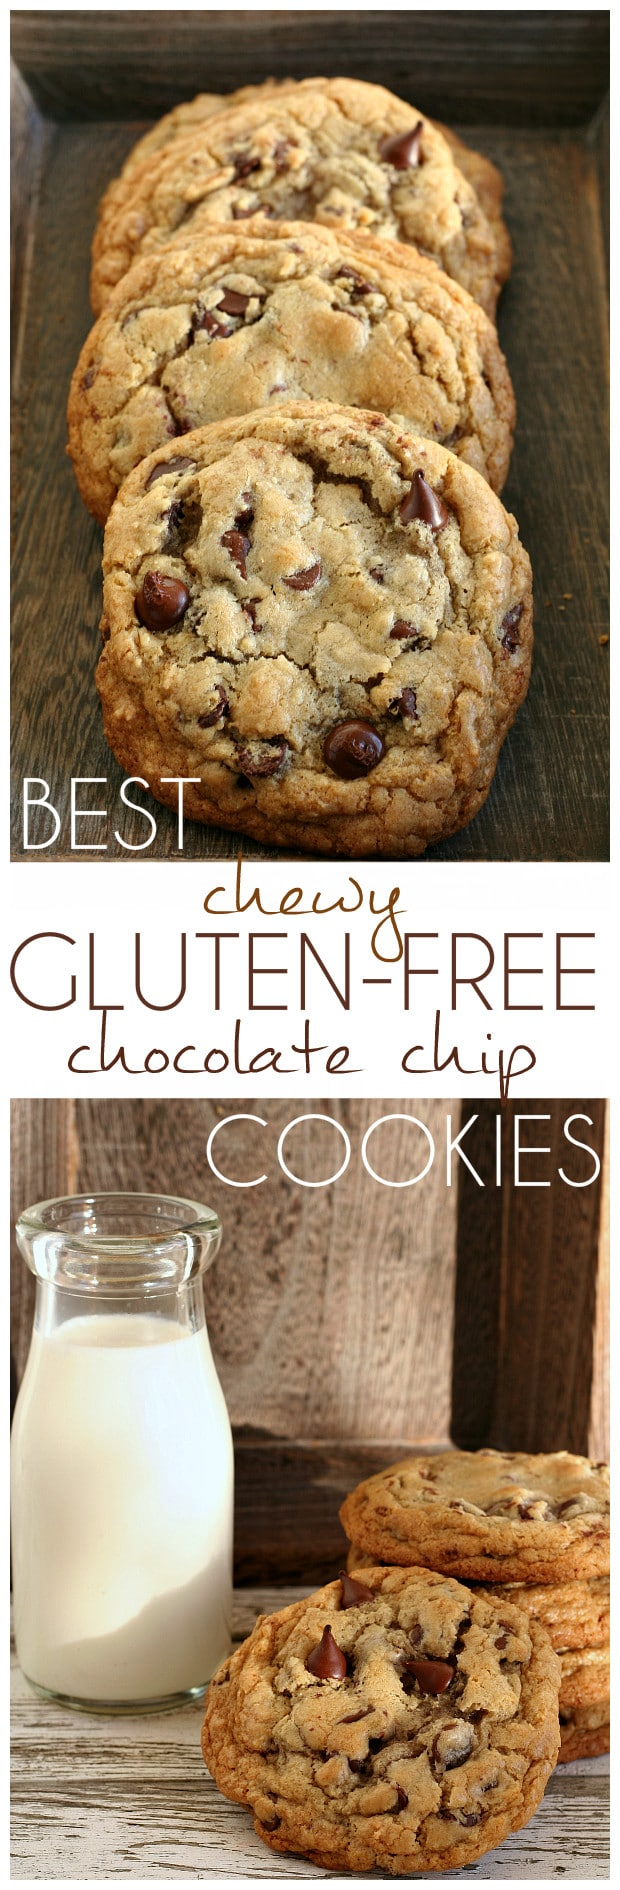 Best Chewy Gluten-Free Chocolate Chip Cookies - Recipe perfected after more than 3 dozen attempts!